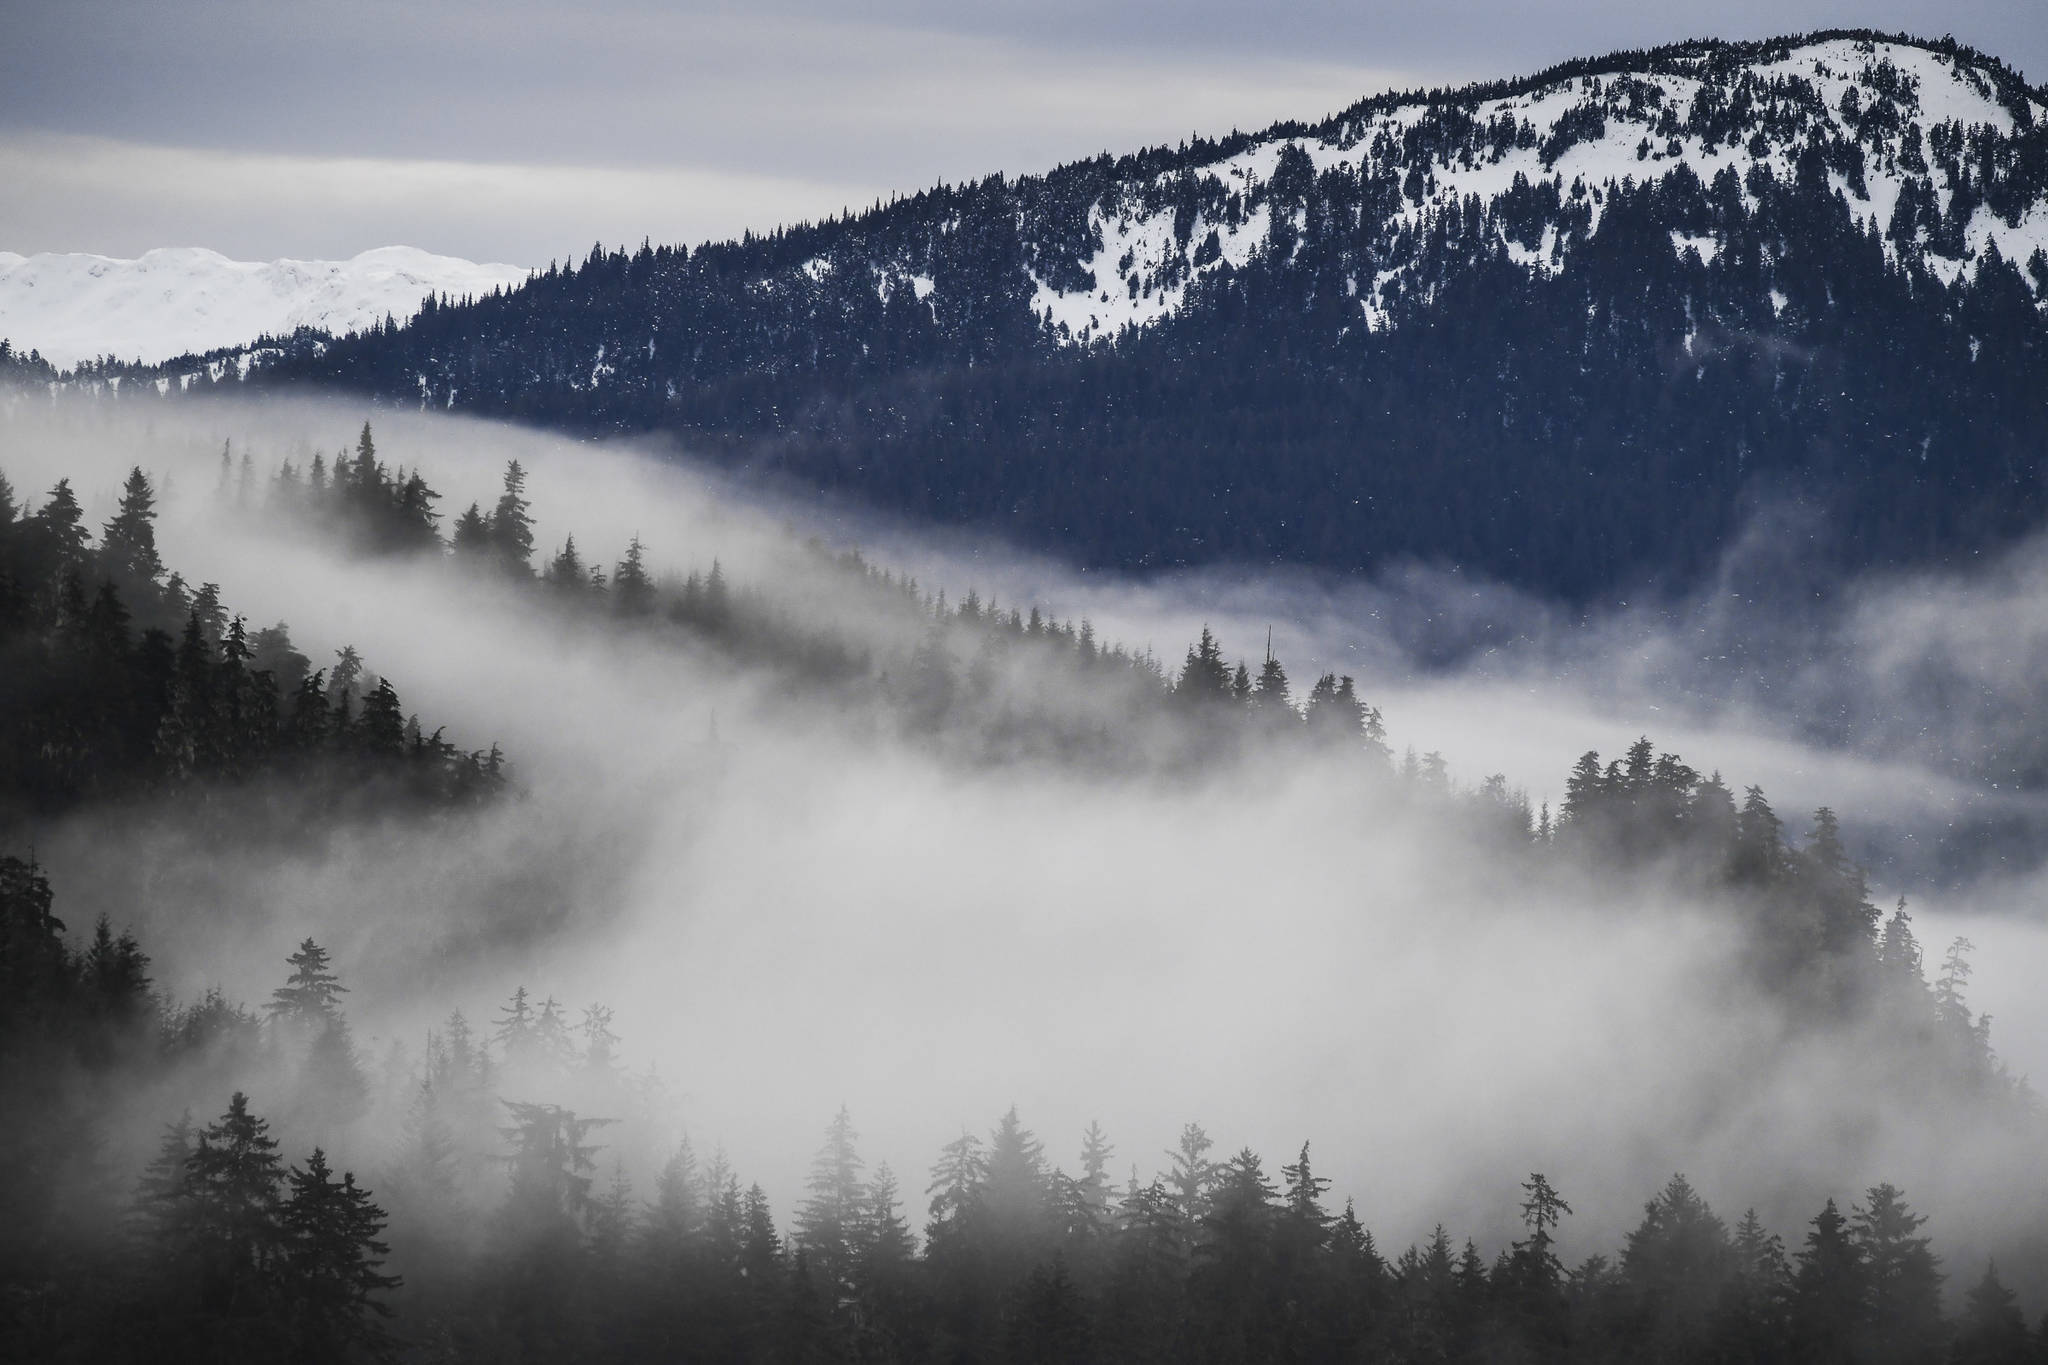 Fog drifts through the trees in the Tongass National Forest on Monday, Dec. 9, 2019. (Michael Penn | Juneau Empire File)